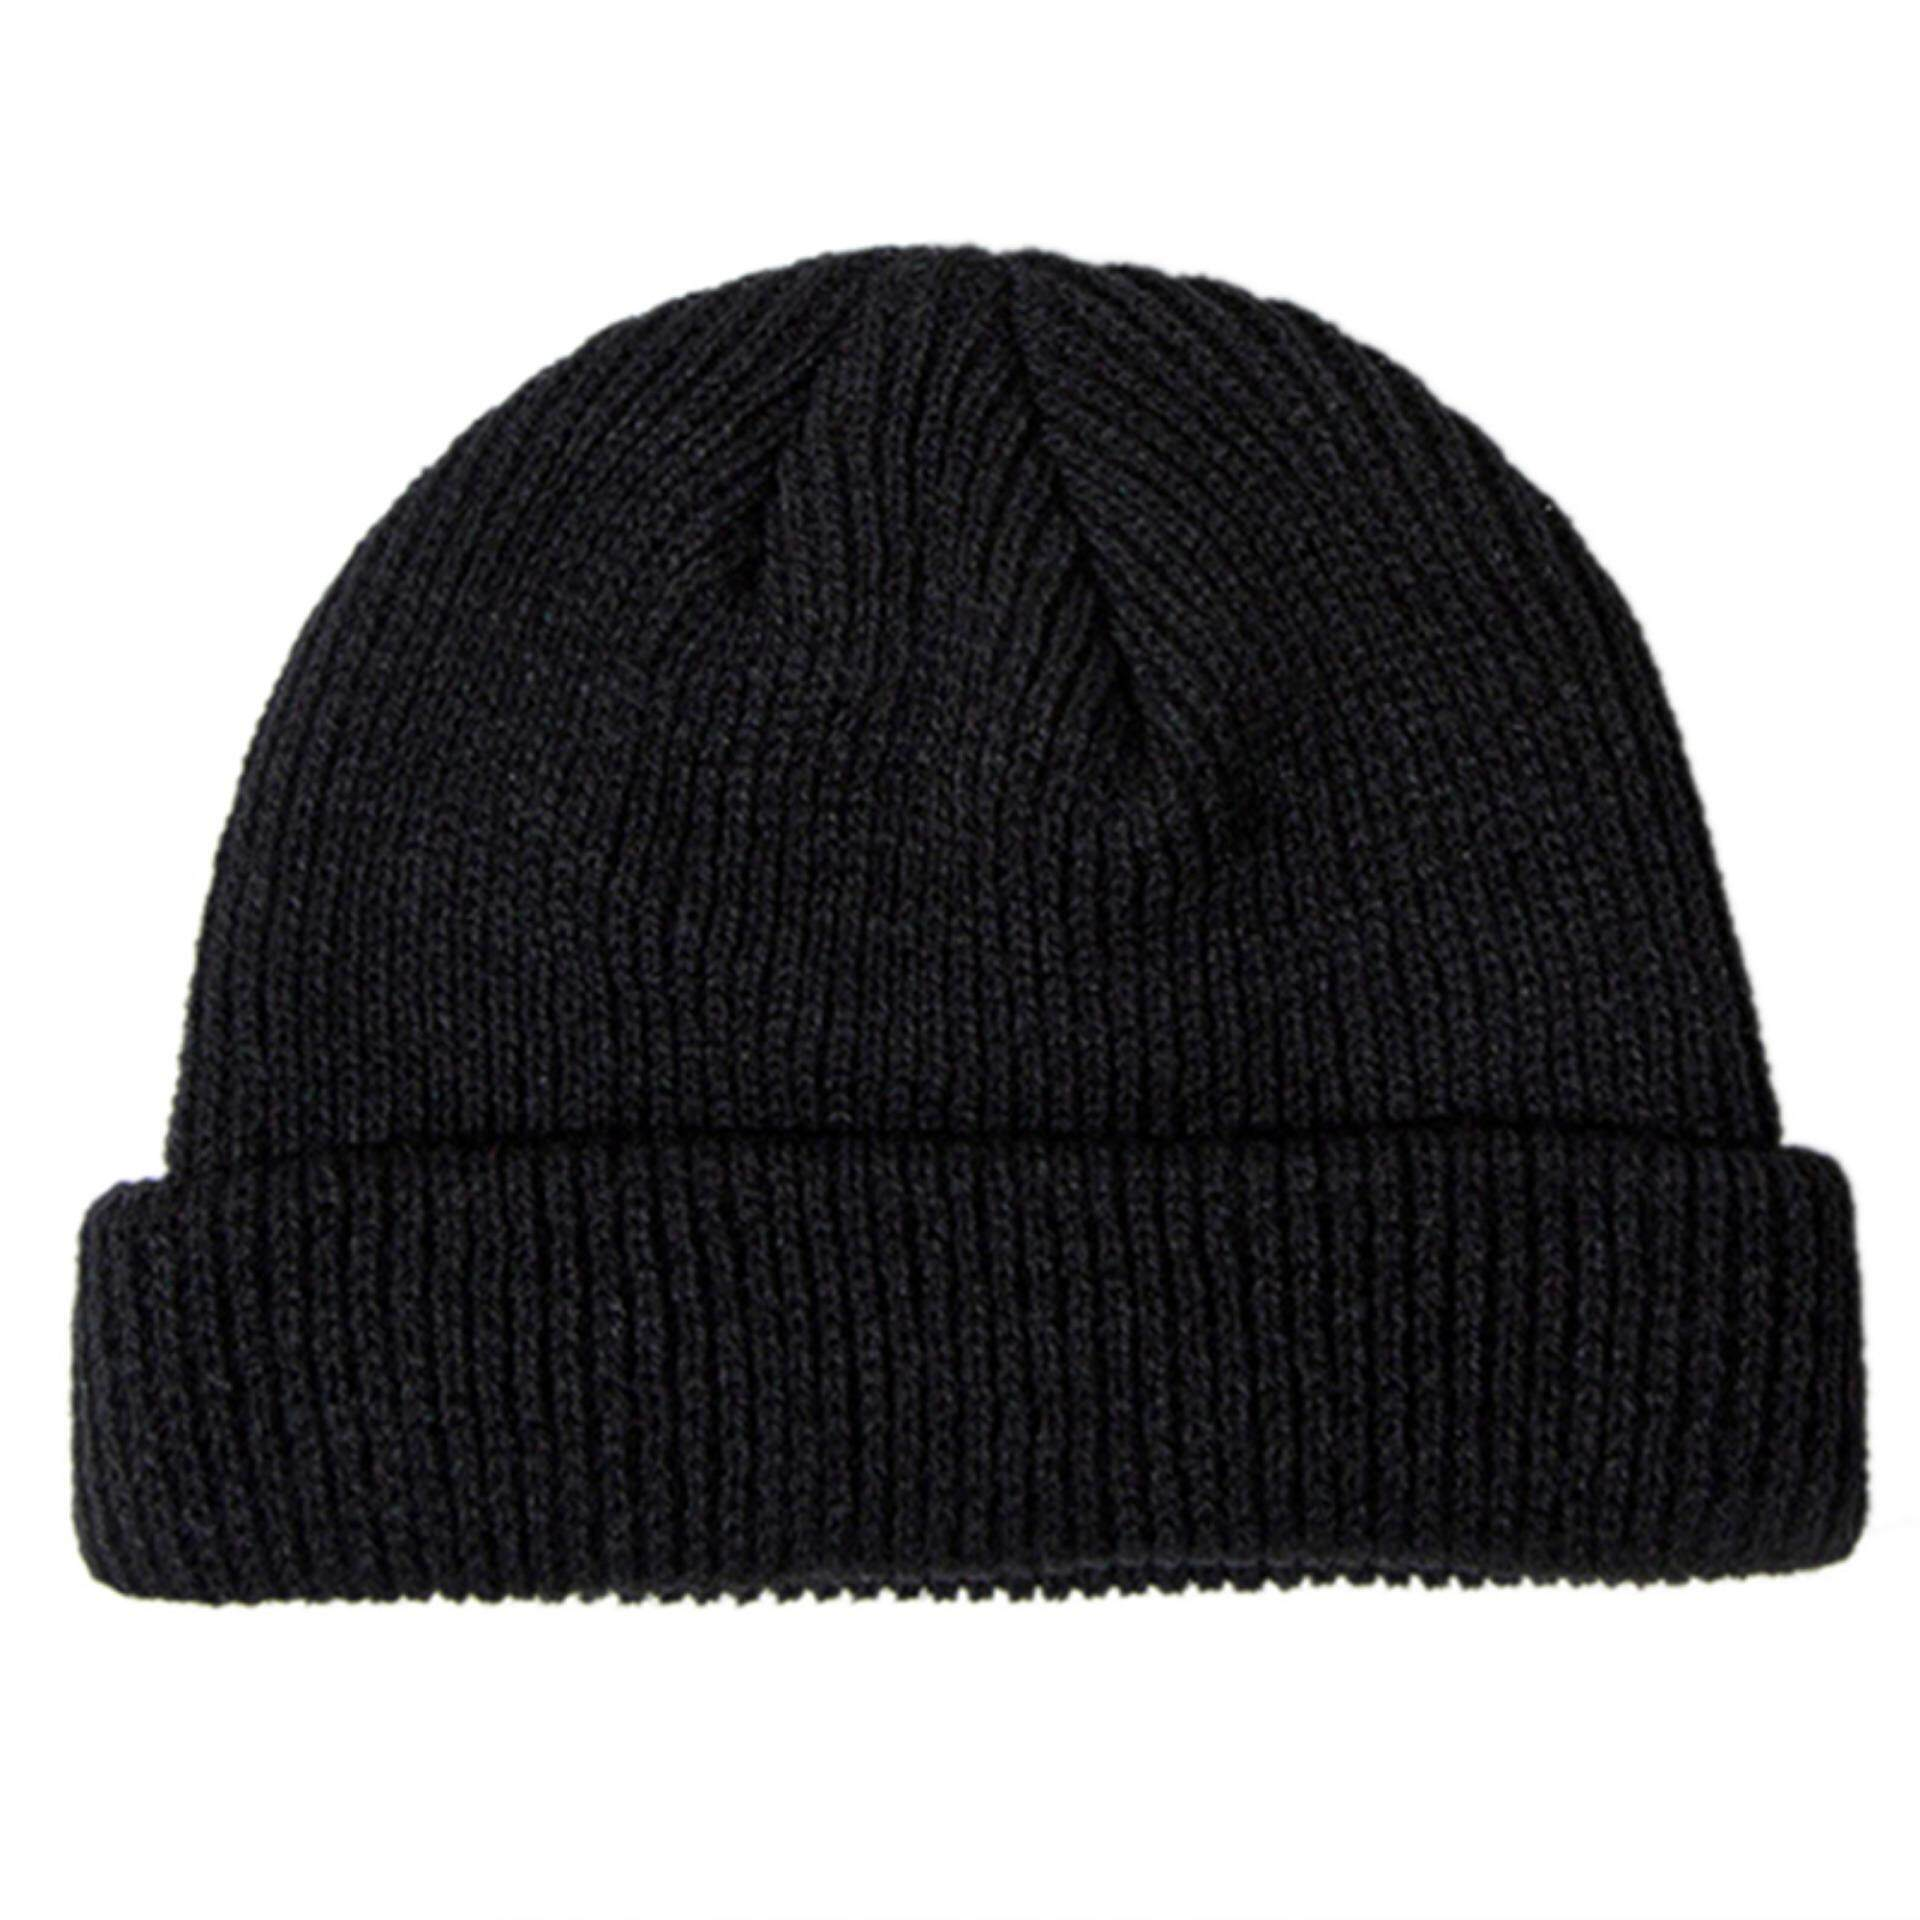 Unisex Men Women Beanie Hat Warm Ribbed Winter Turn Ski Fisherman Hat  Fashion 4384bf17f542